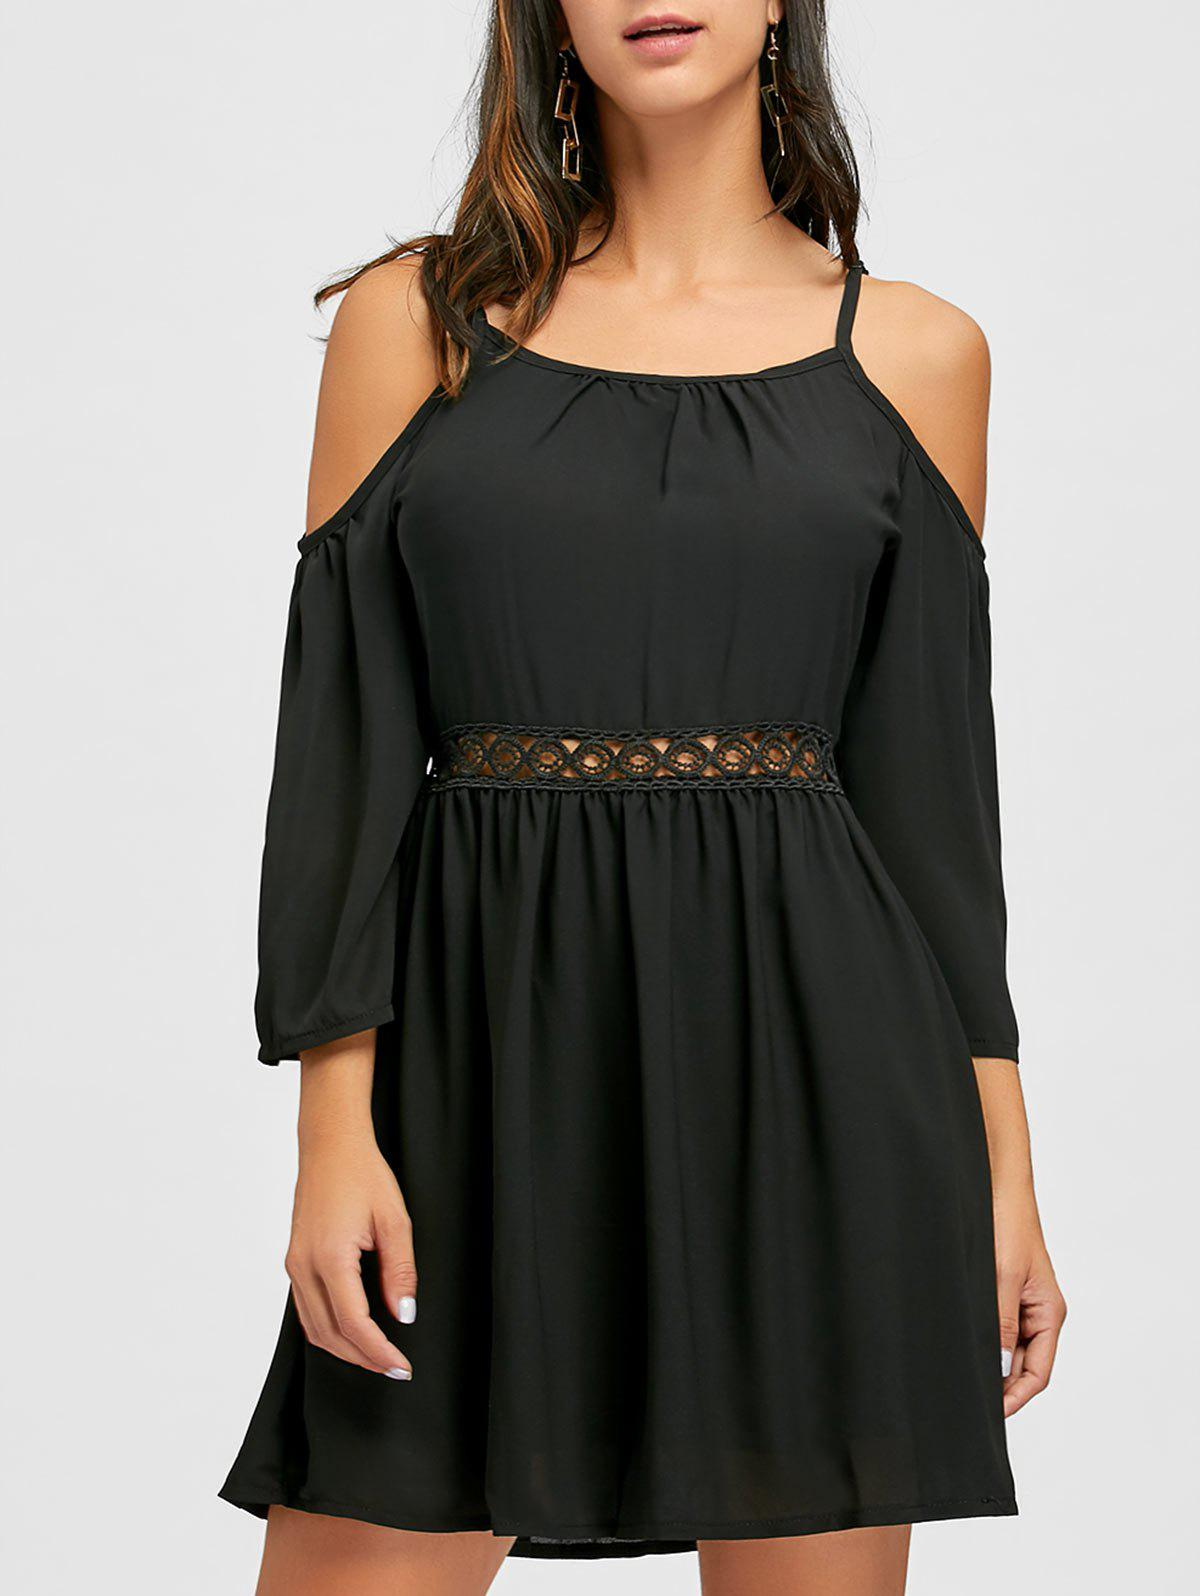 Cami Strap Open Shoulder Chiffon Dress - BLACK L